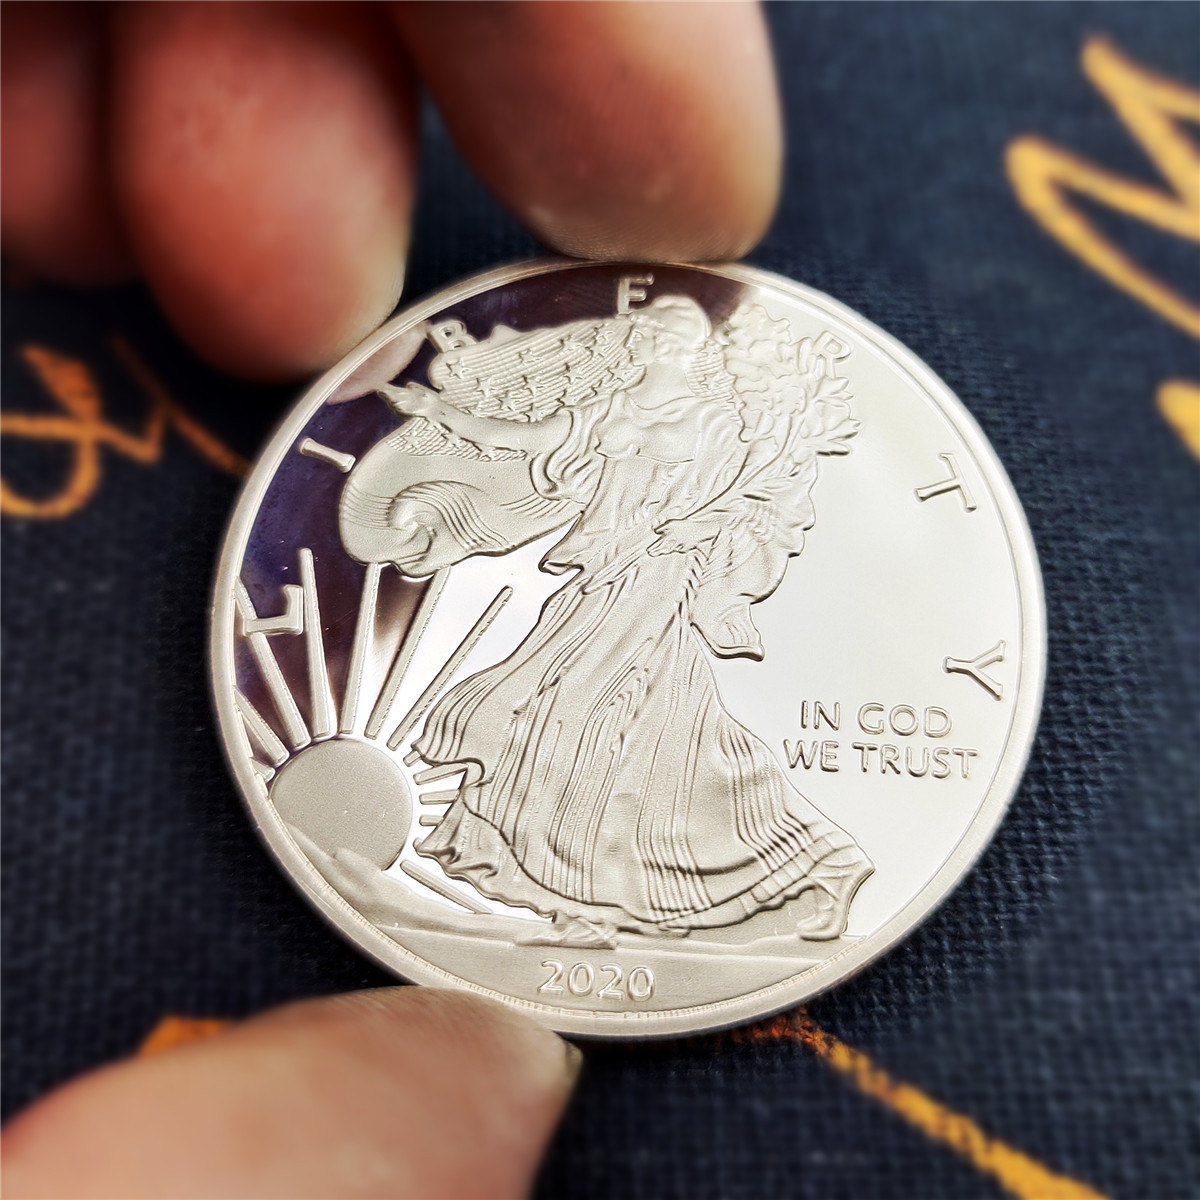 Silver coins United States 2020 2021Statue of Liberty Commemorative Coins Other Years Liberty Commemorative Coins can be customi